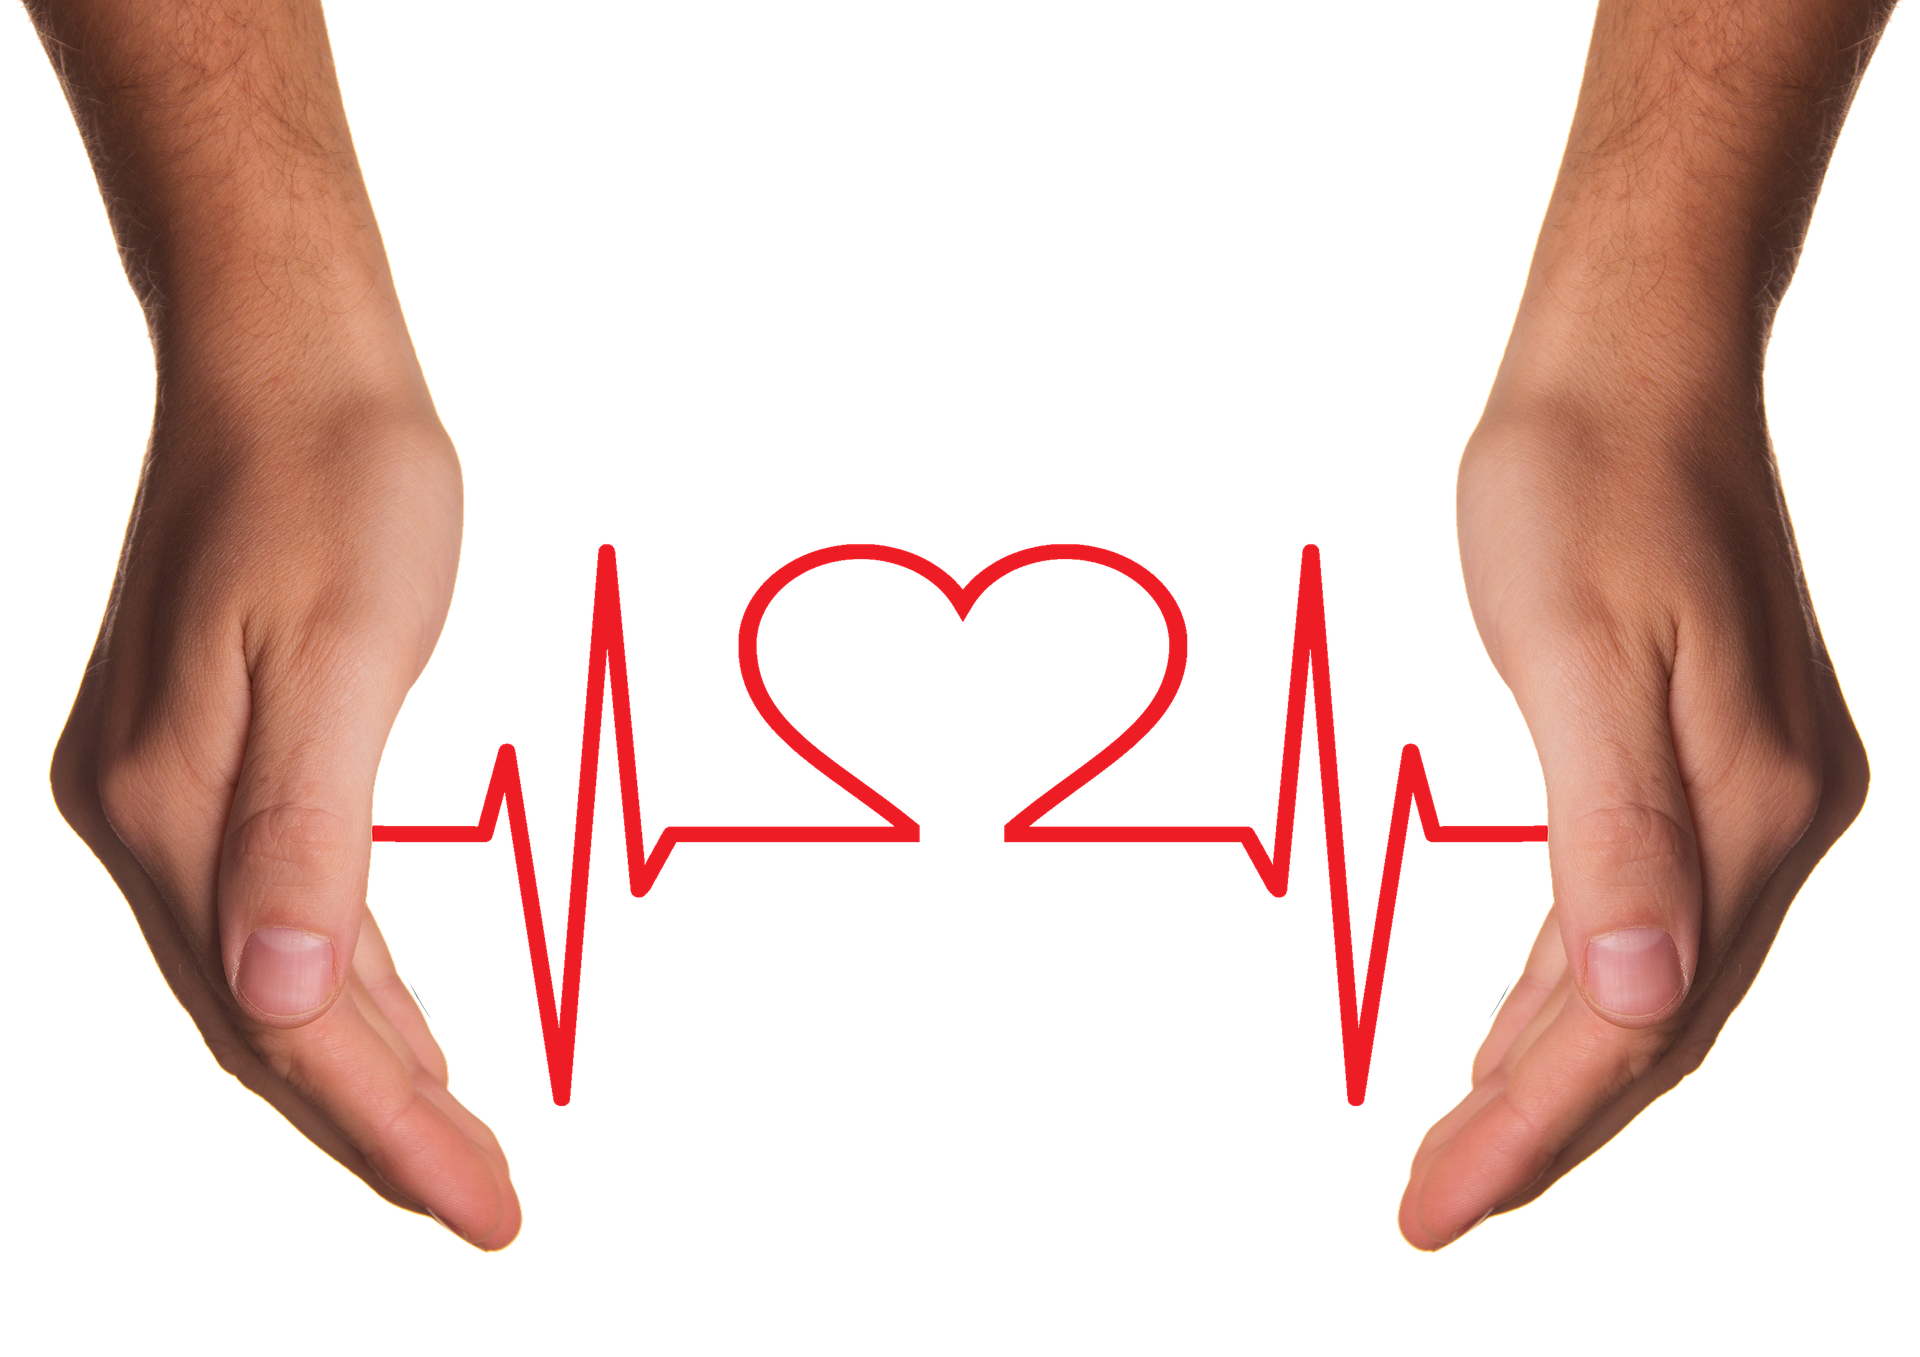 Emotional selling in medical care